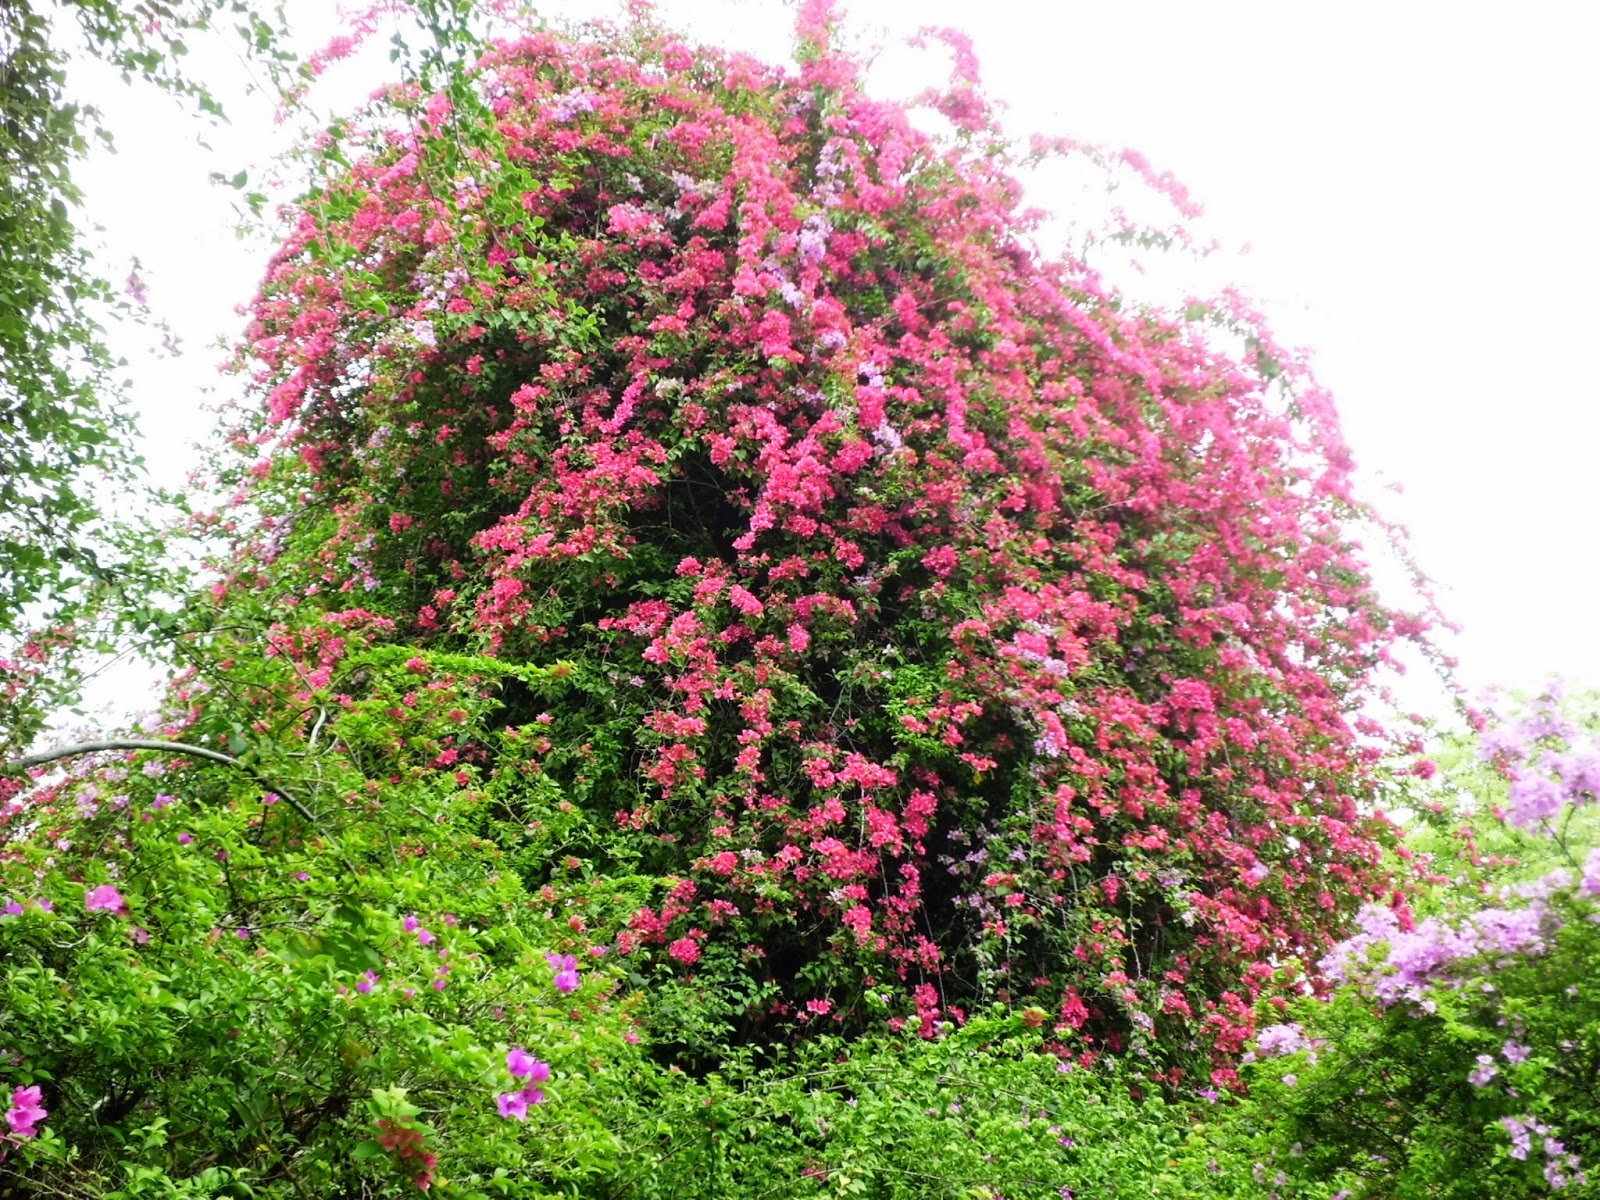 Flowering bougainvillea.